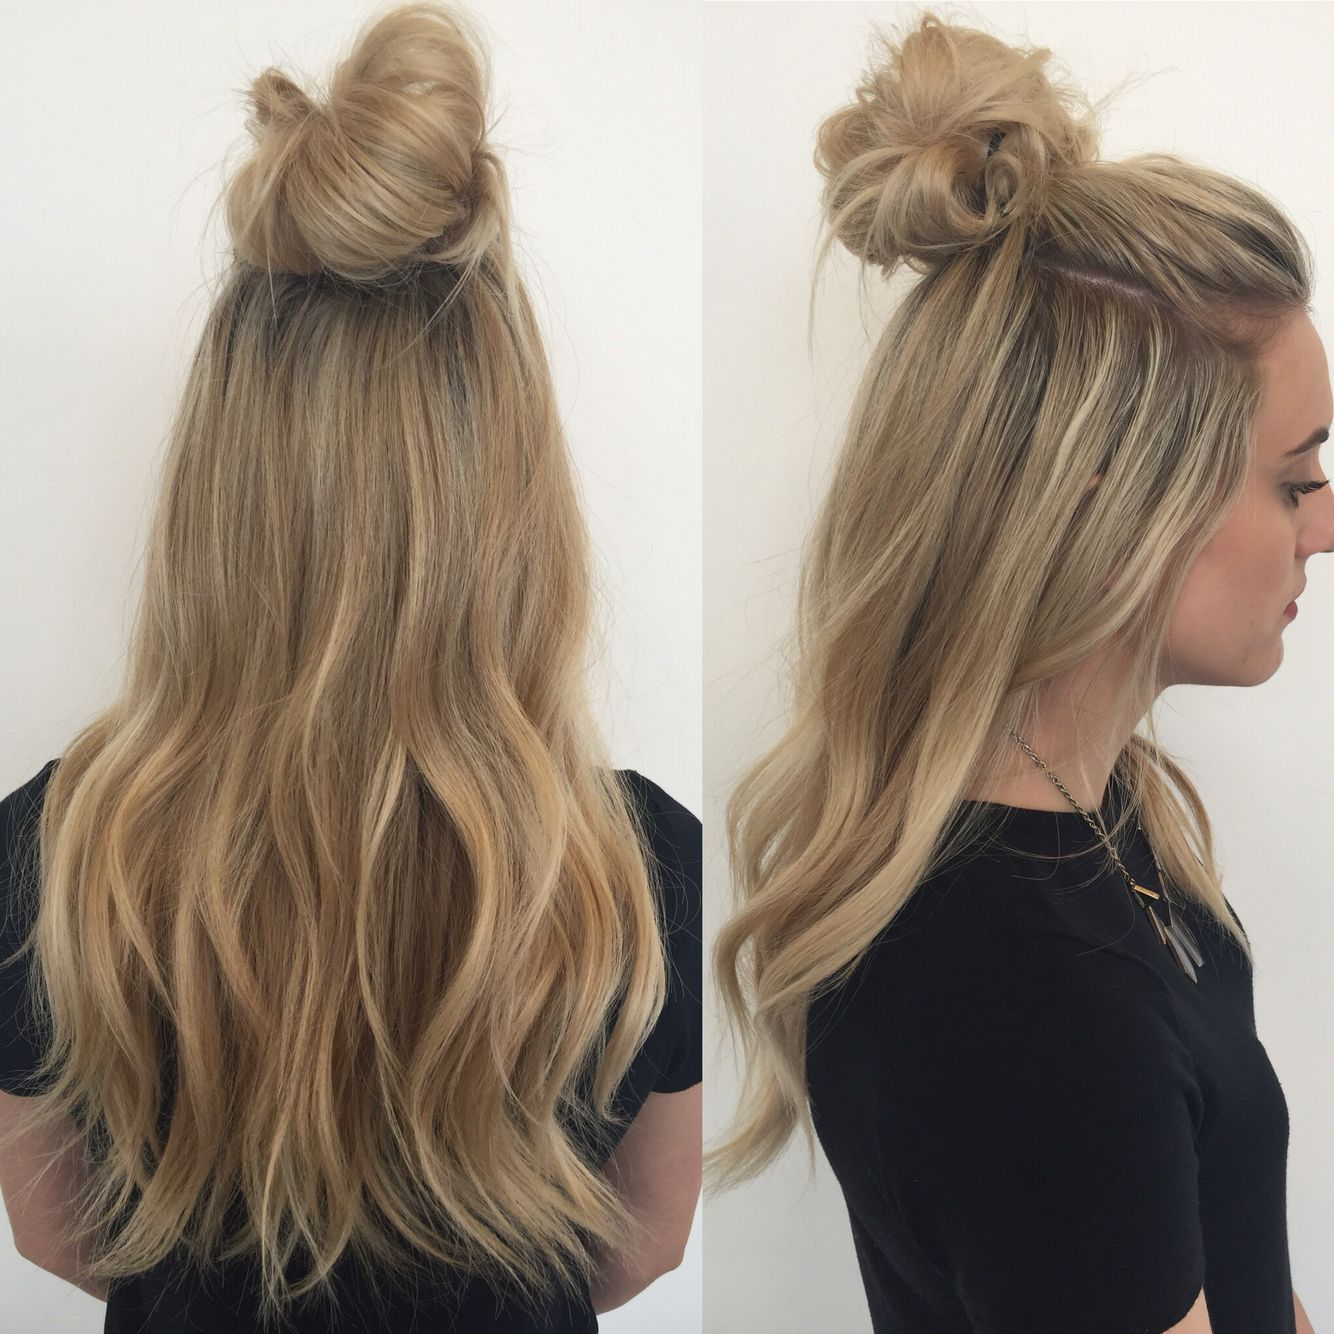 Top Knot Extensions Hair Hairstylist Clip In